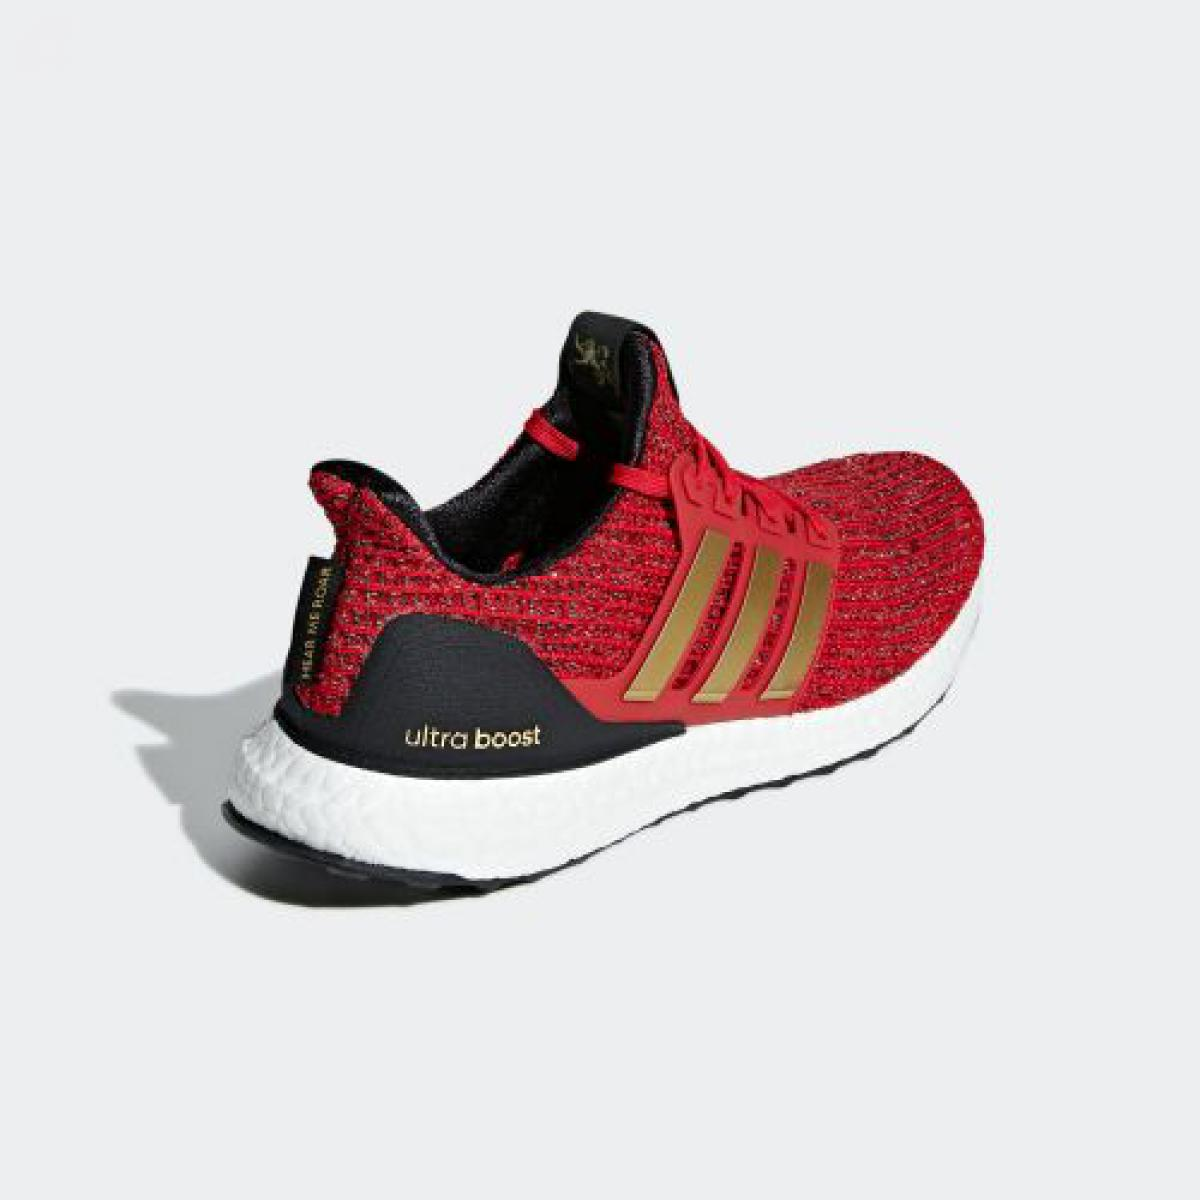 Adidas adidas Adidas X Game of Thrones ultra booth thoravarnish ter adidas X Game of Thrones ULTRABOOST Lannister Lady's men running shoes sports